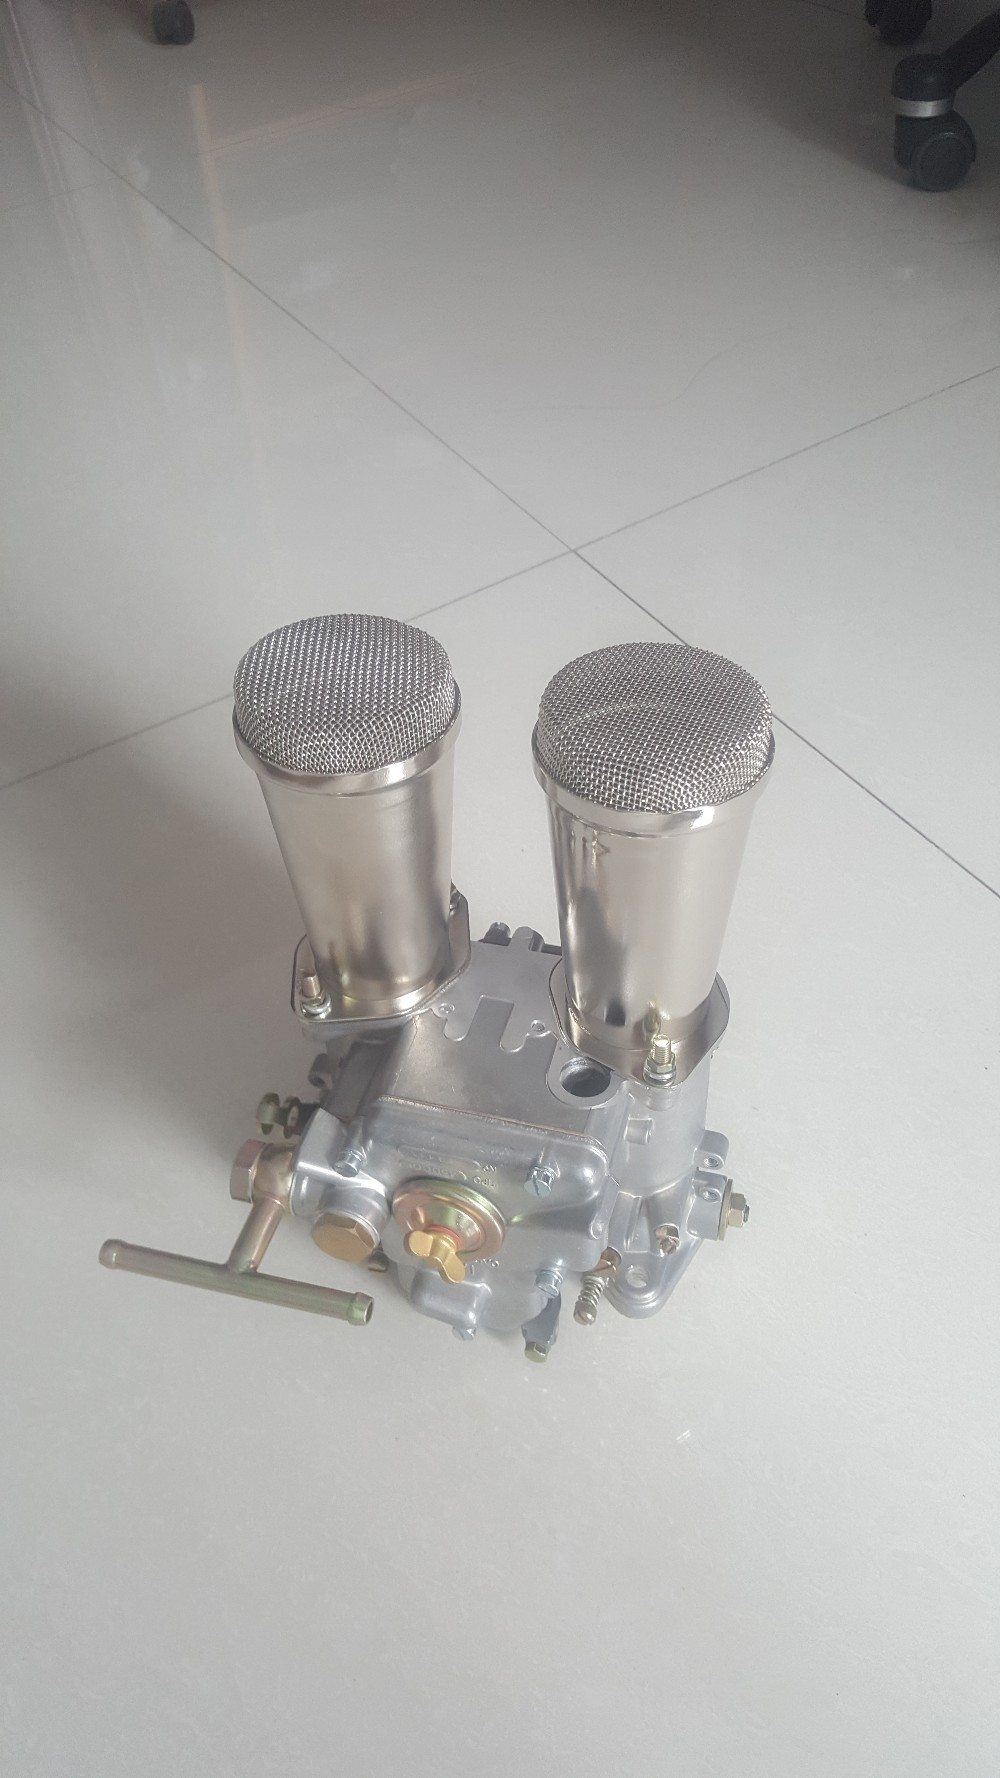 DCOE carburetor air horn